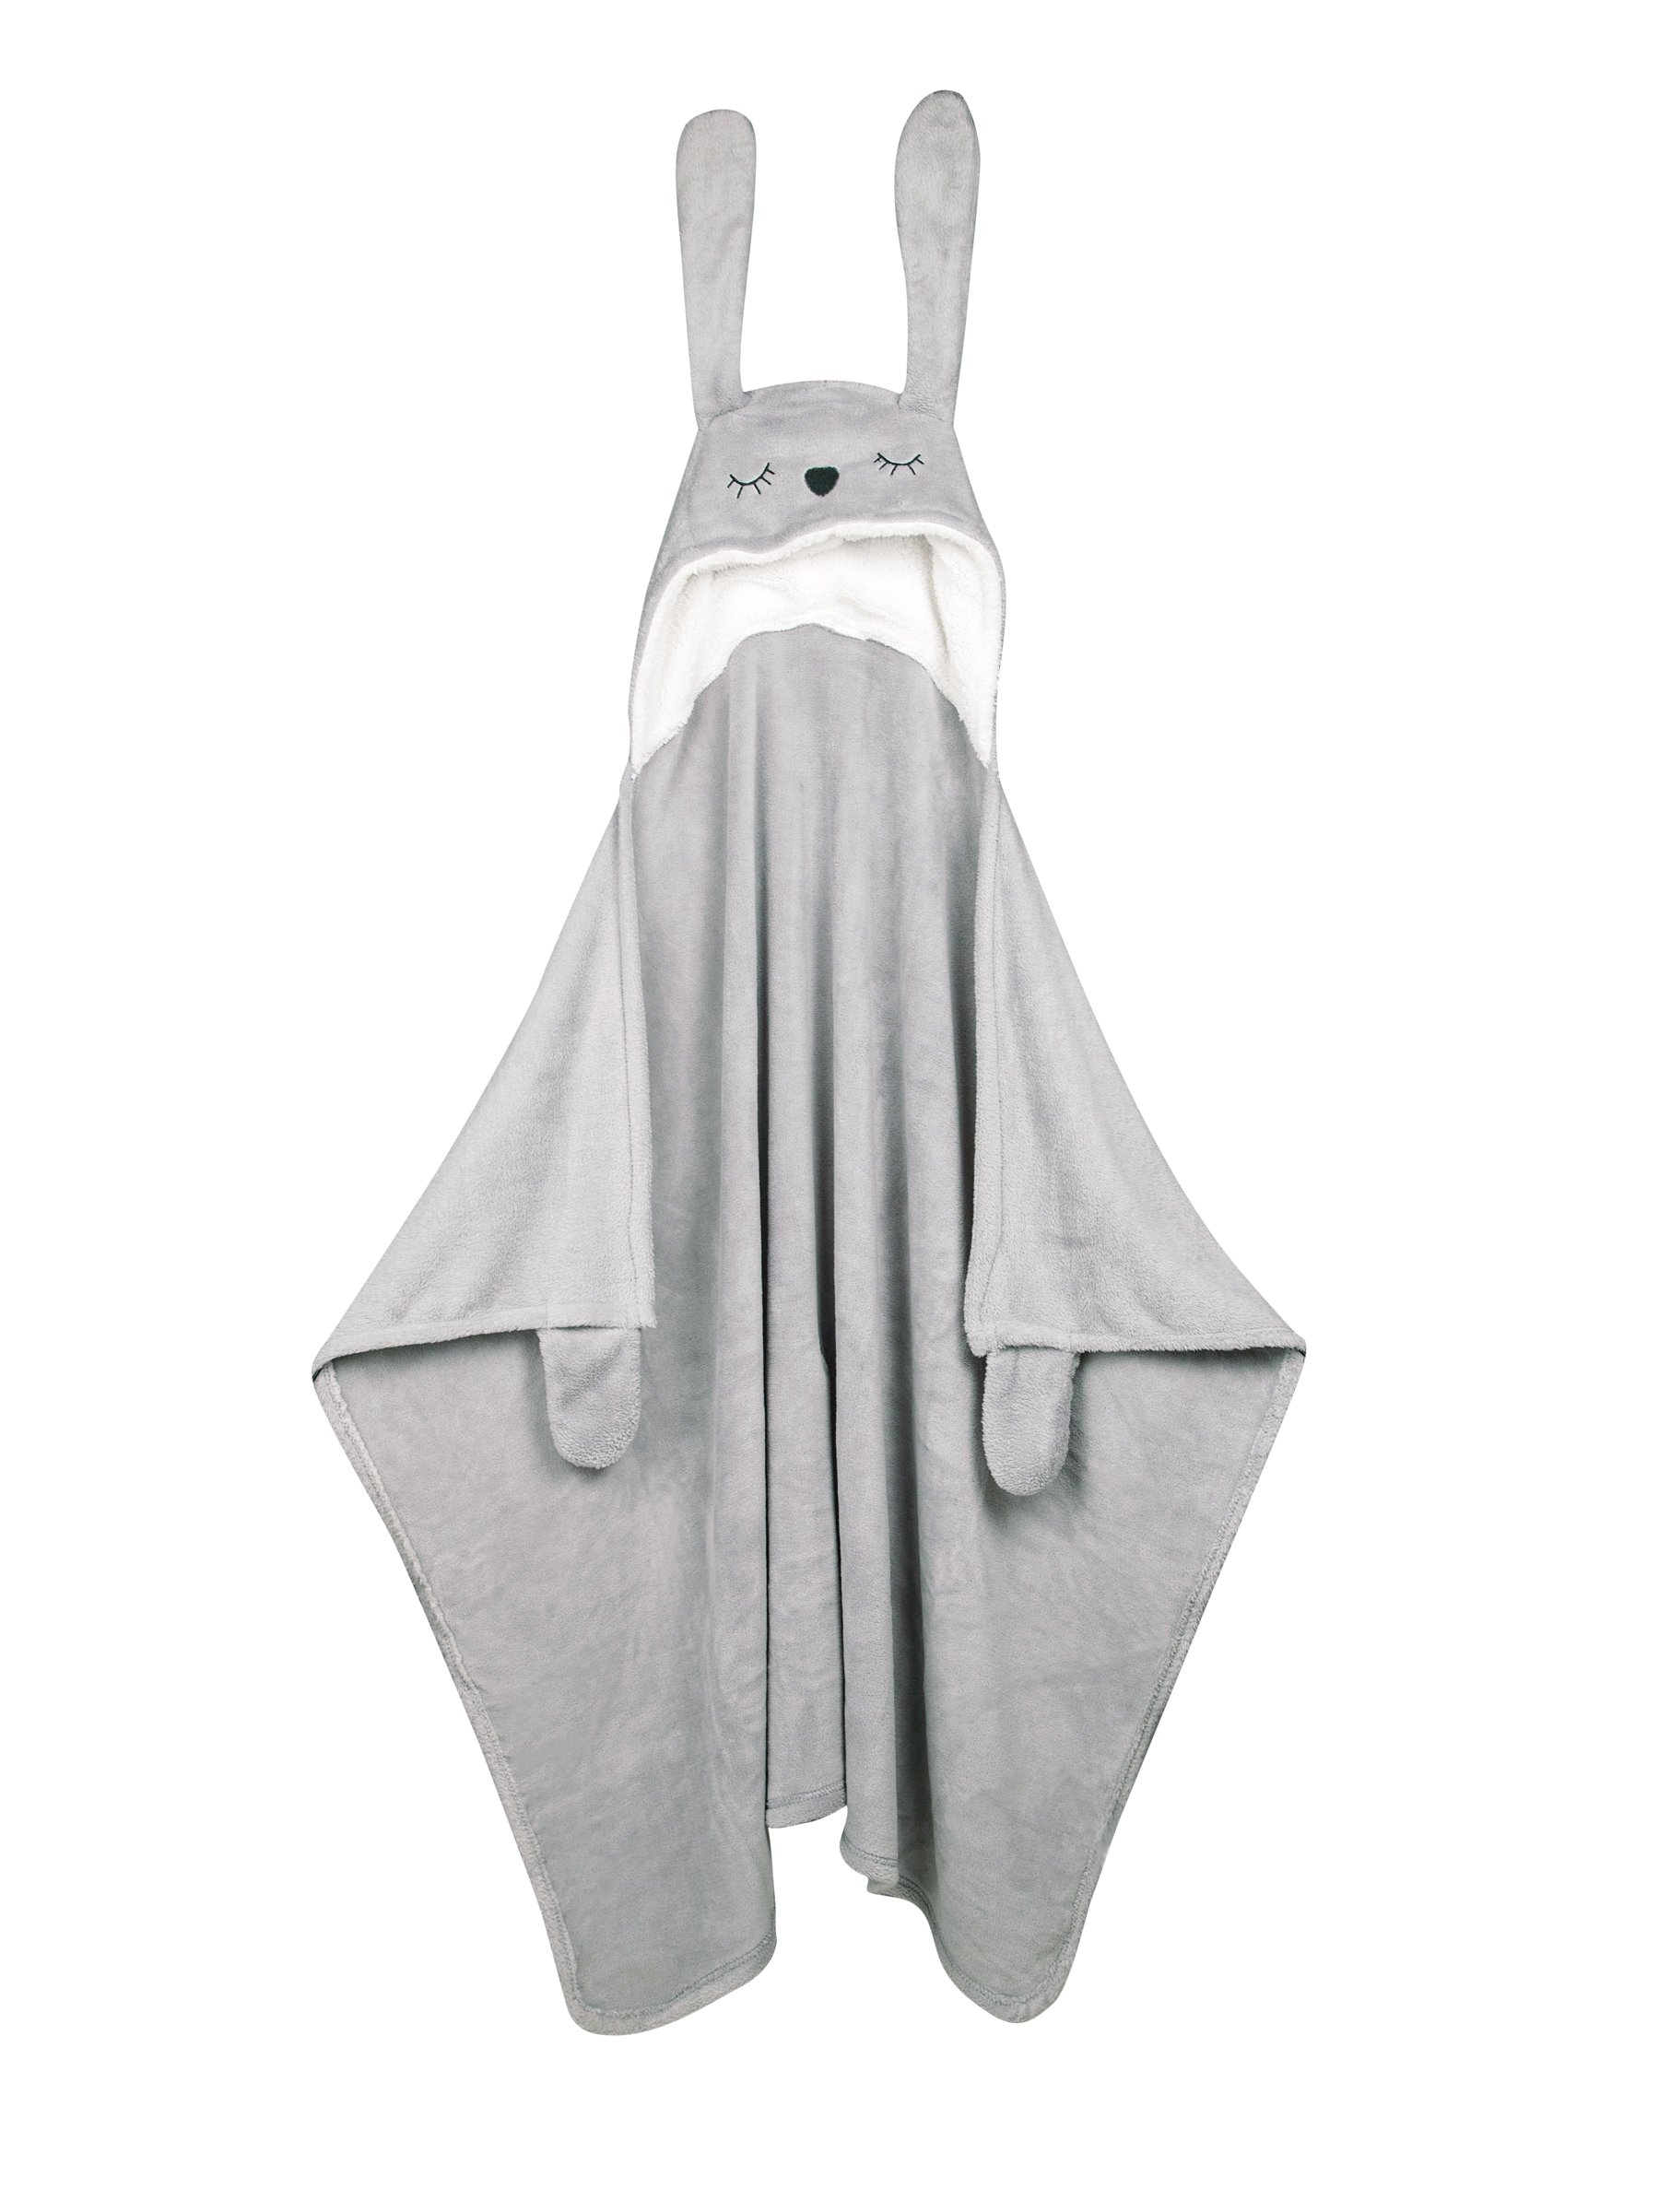 Children's Hooded Animal Blankets Kids (Rabbit Blanket) by Babycat